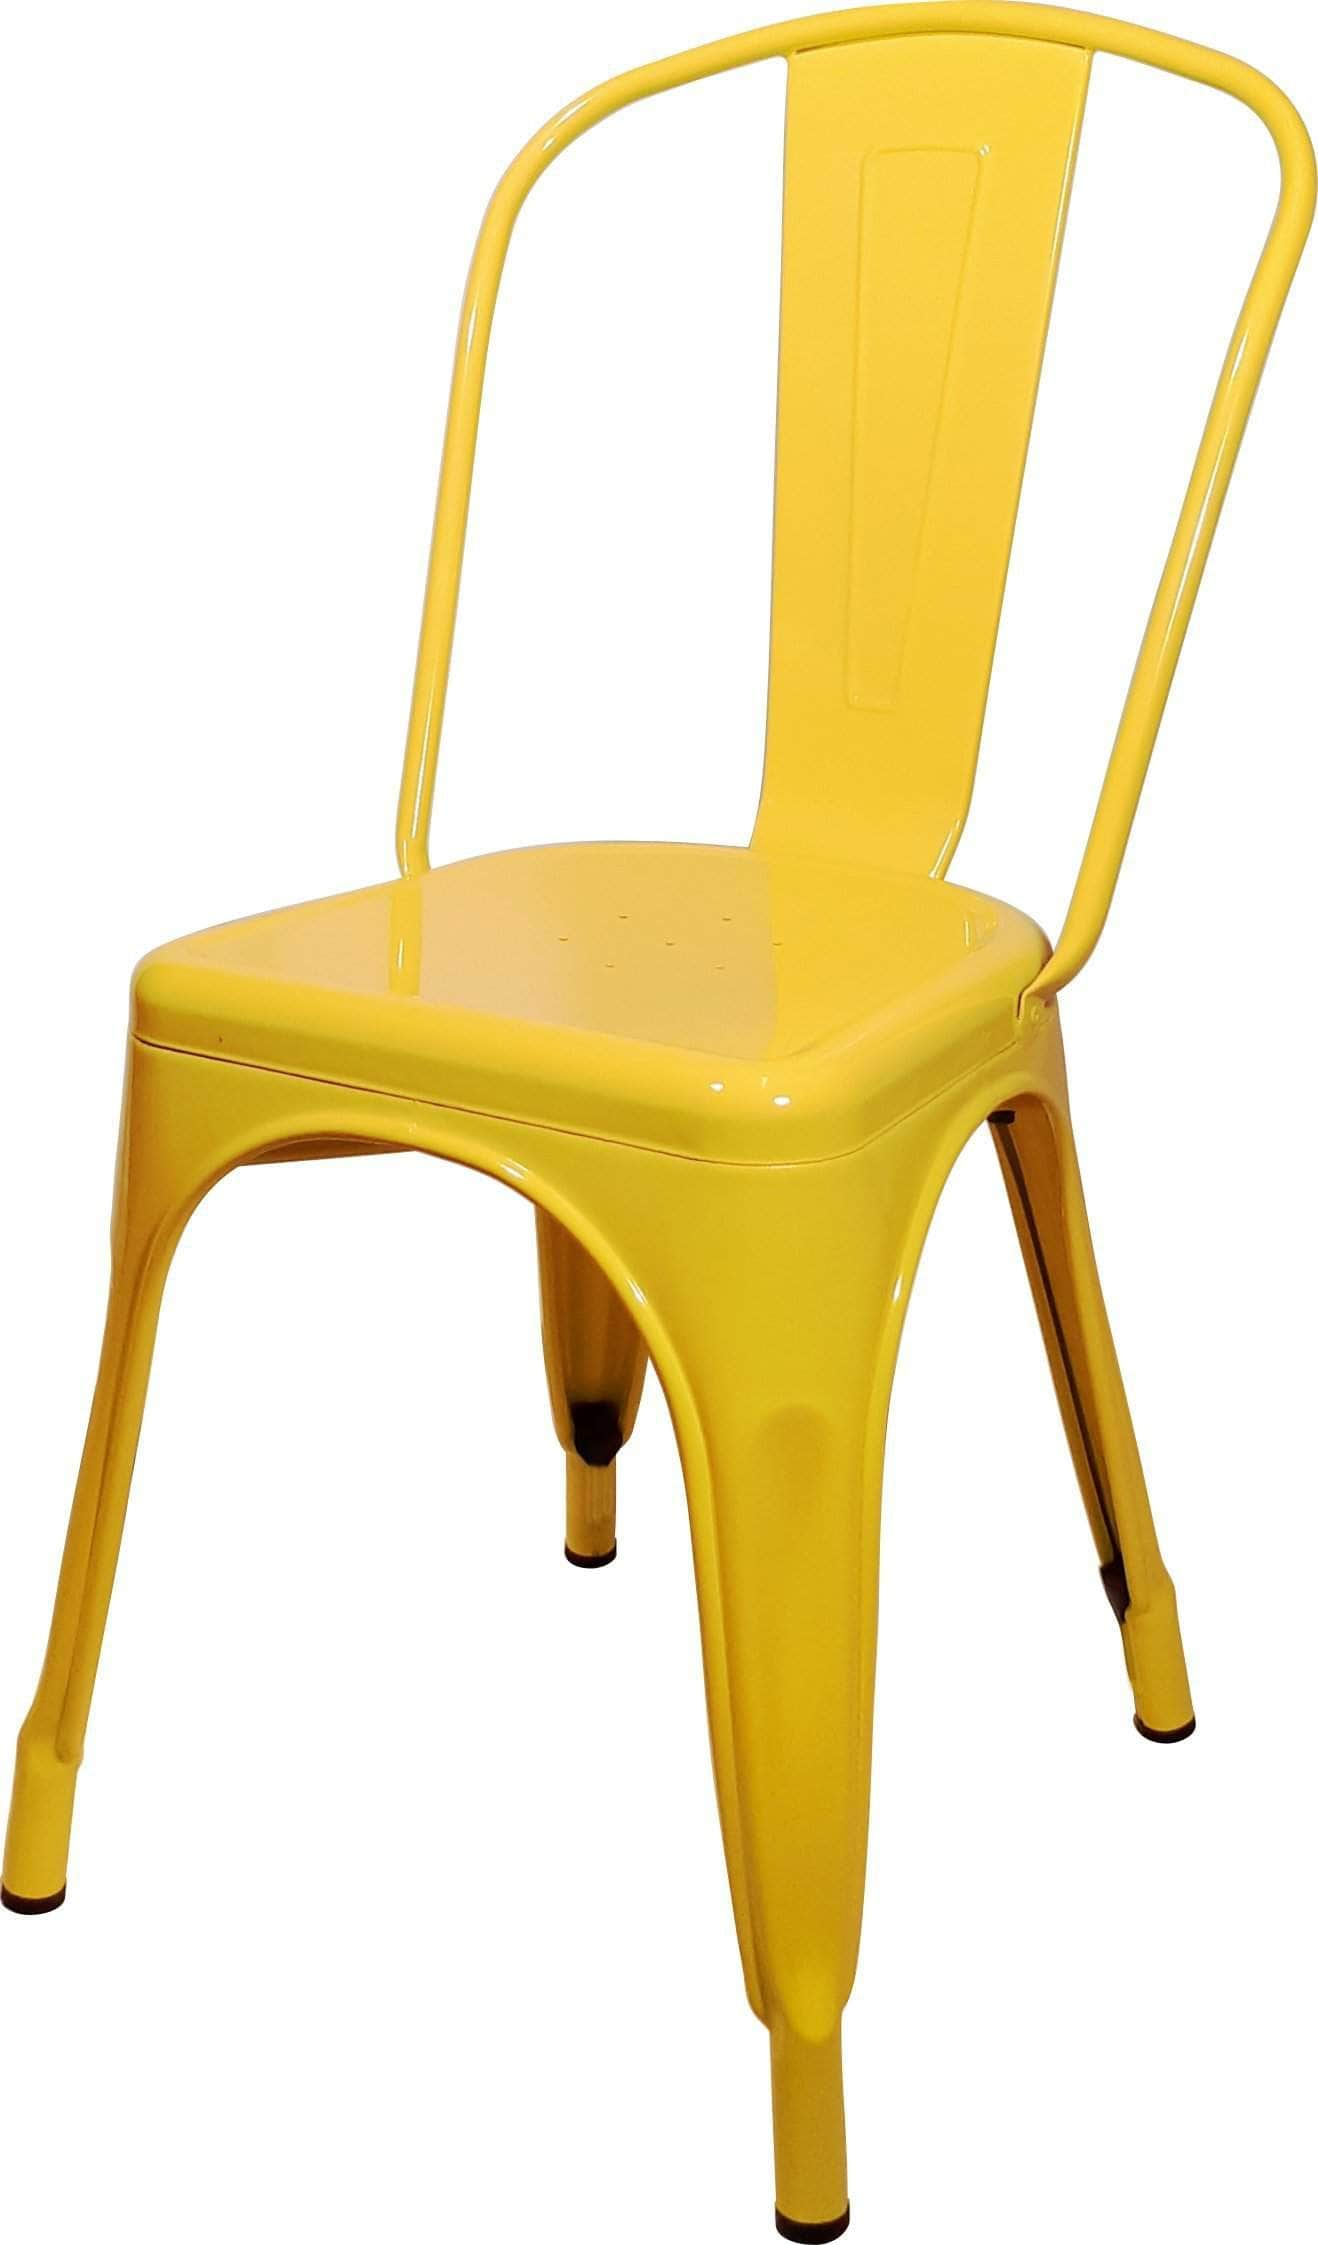 yellow replica tolix cafe chair high back